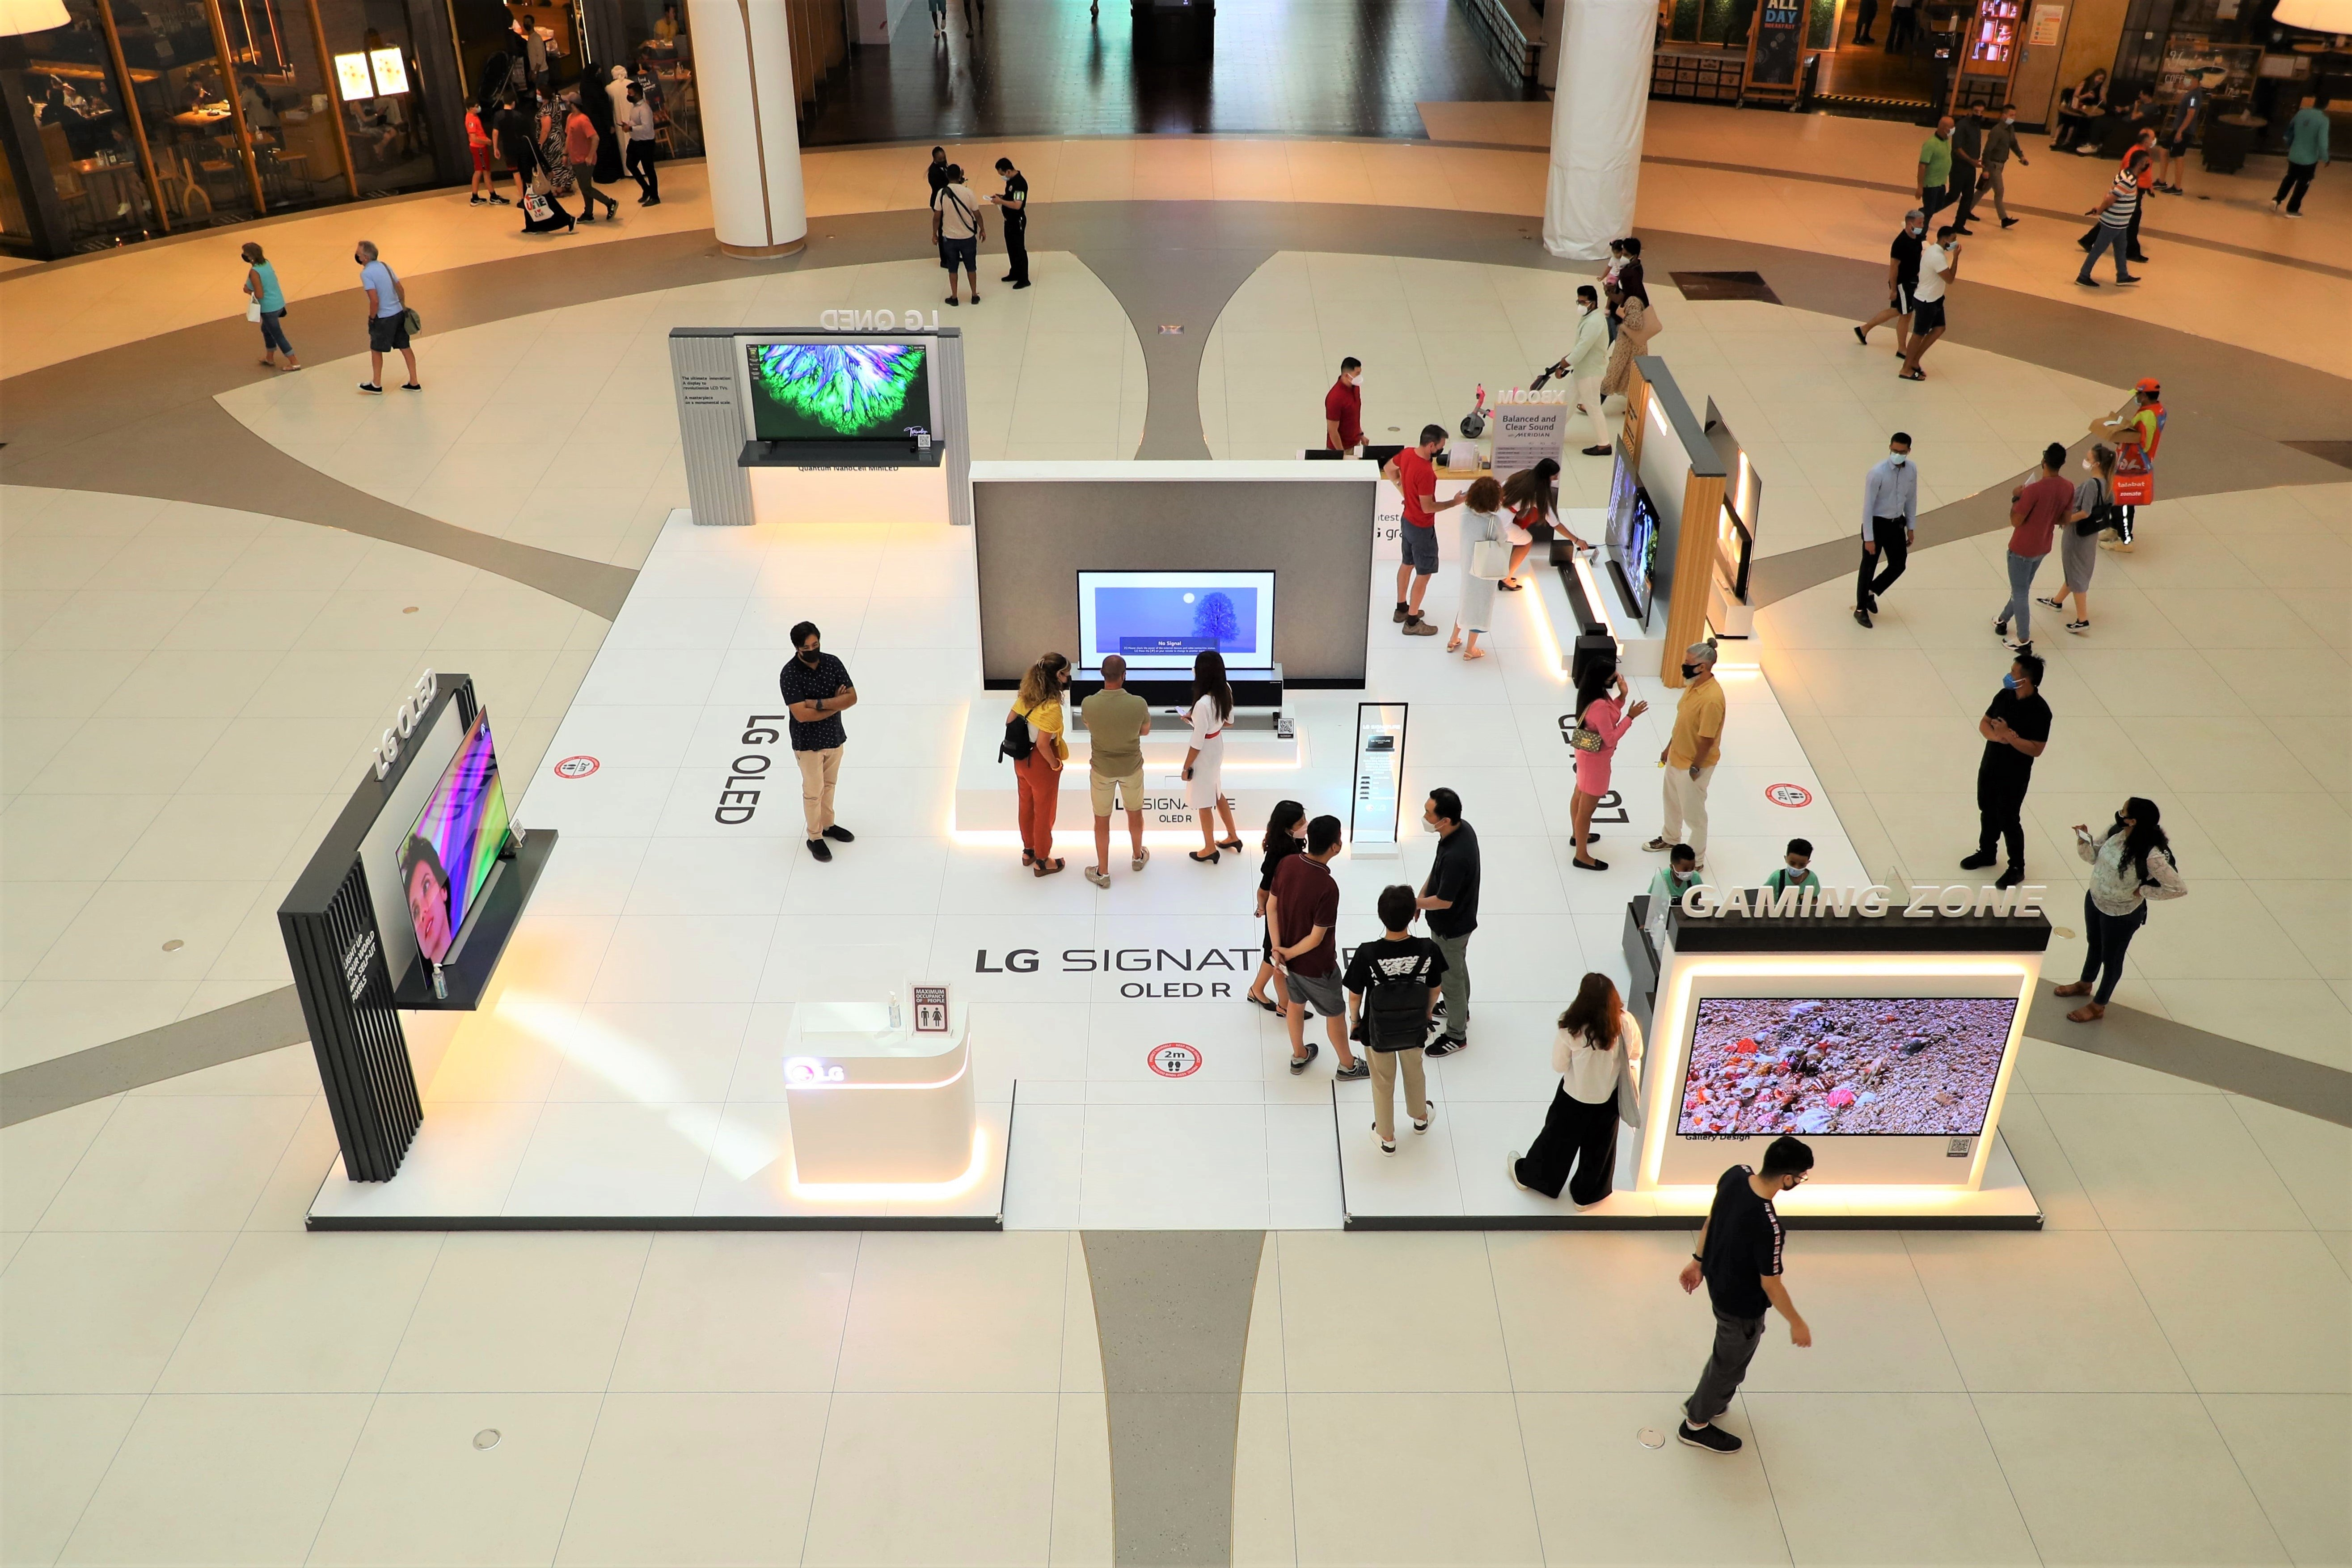 Experience The Power Of OLED With LG At The Dubai Mall